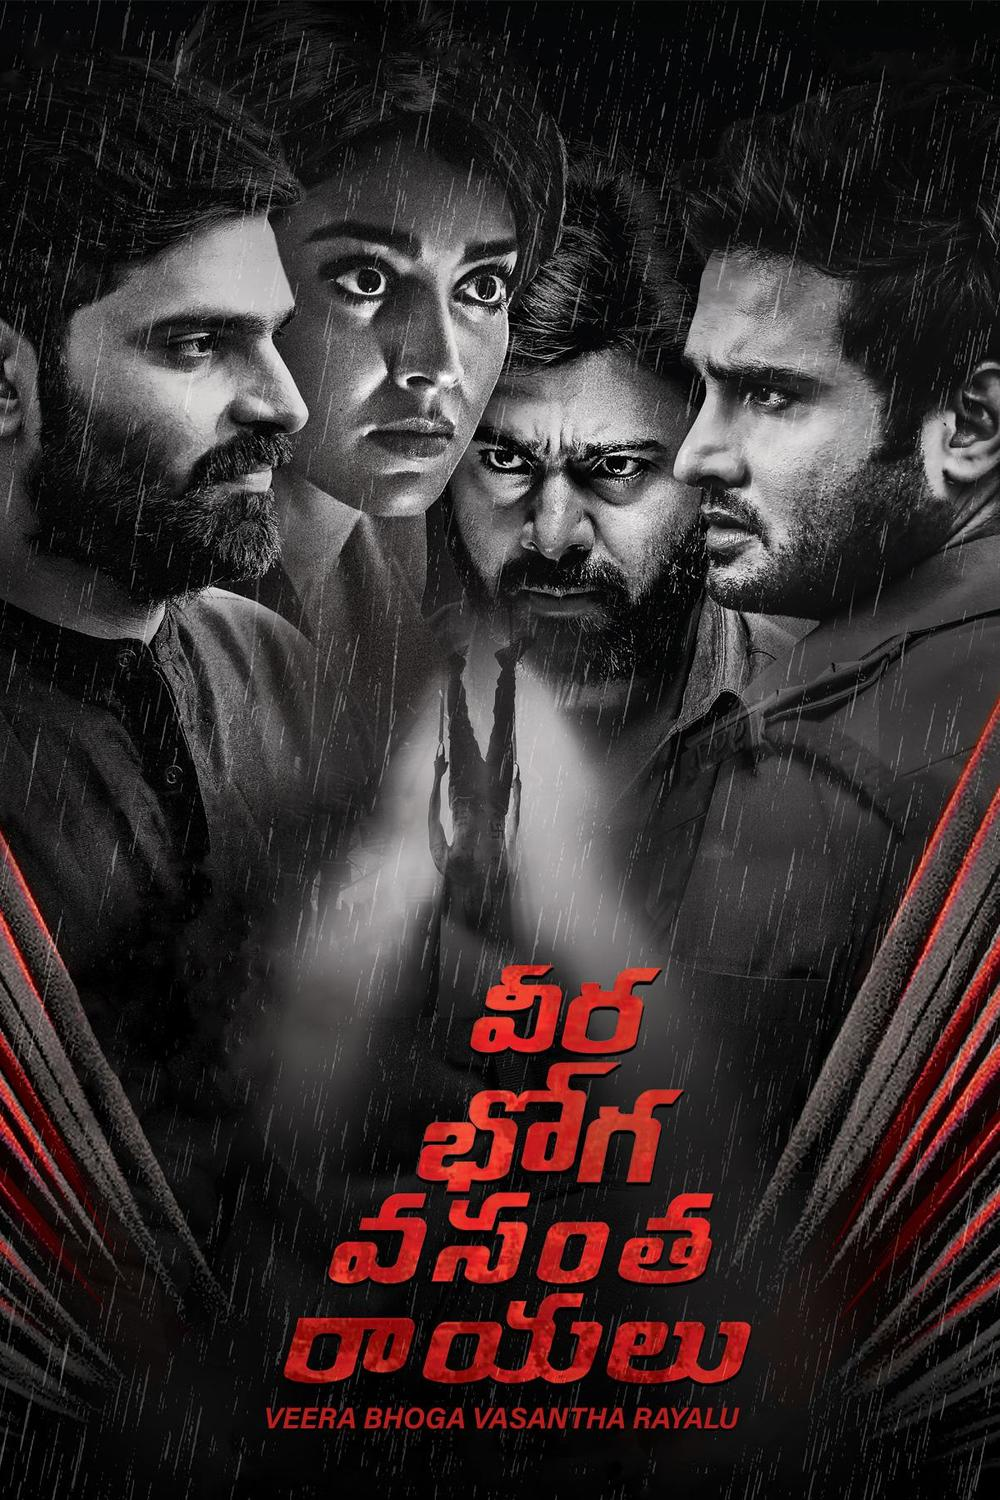 Veera Bhoga Vasantha Rayalu 2018 Hindi Dual Audio 650MB UNCUT HDRip 720p HEVC x265 ESubs Download